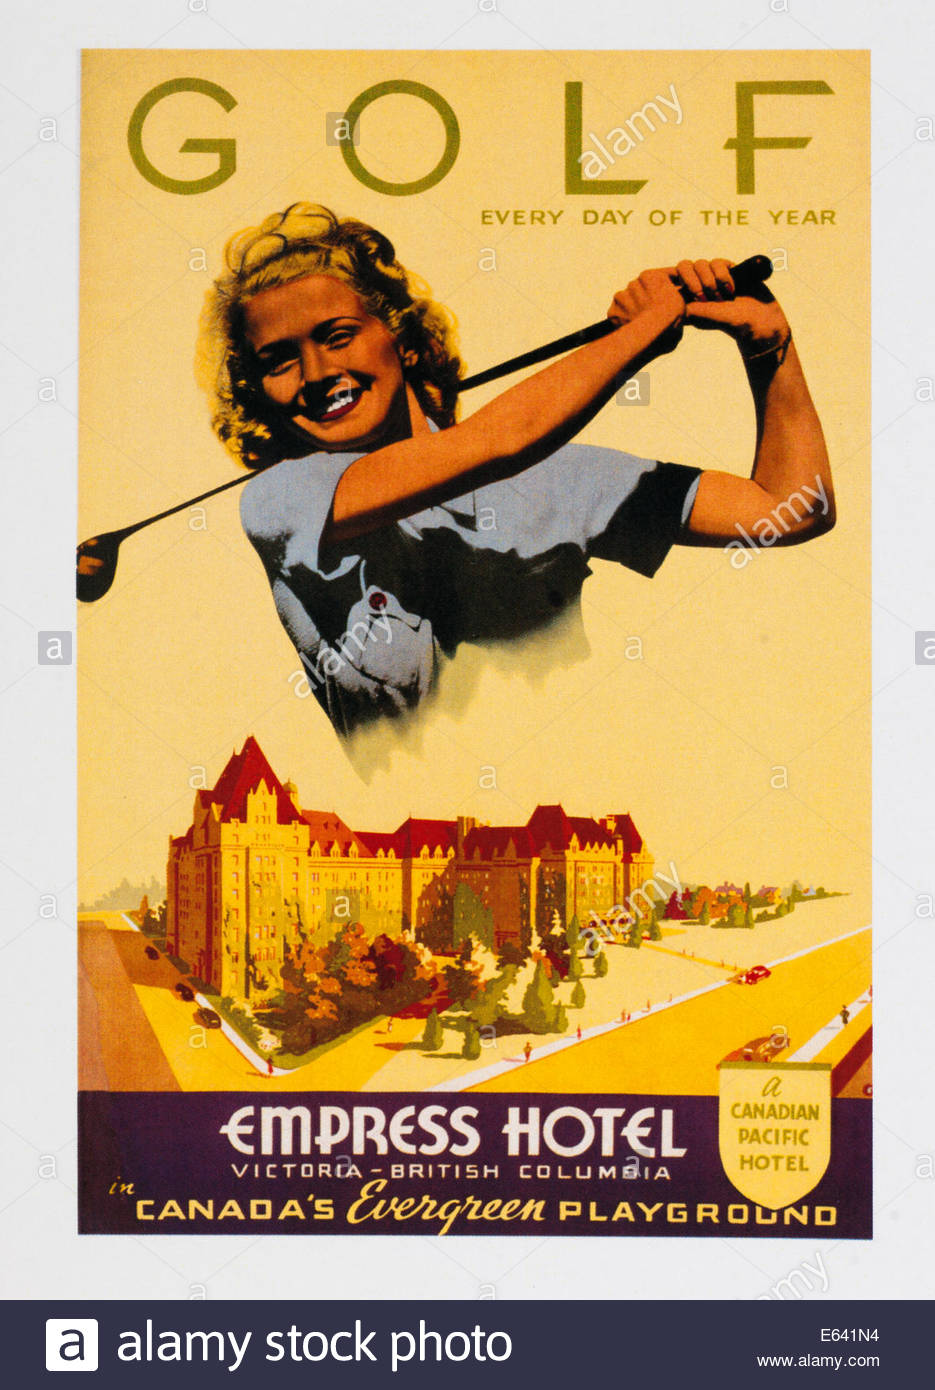 vintage voyage affiche publicitaire de golf l 39 h tel empress victoria colombie britannique. Black Bedroom Furniture Sets. Home Design Ideas